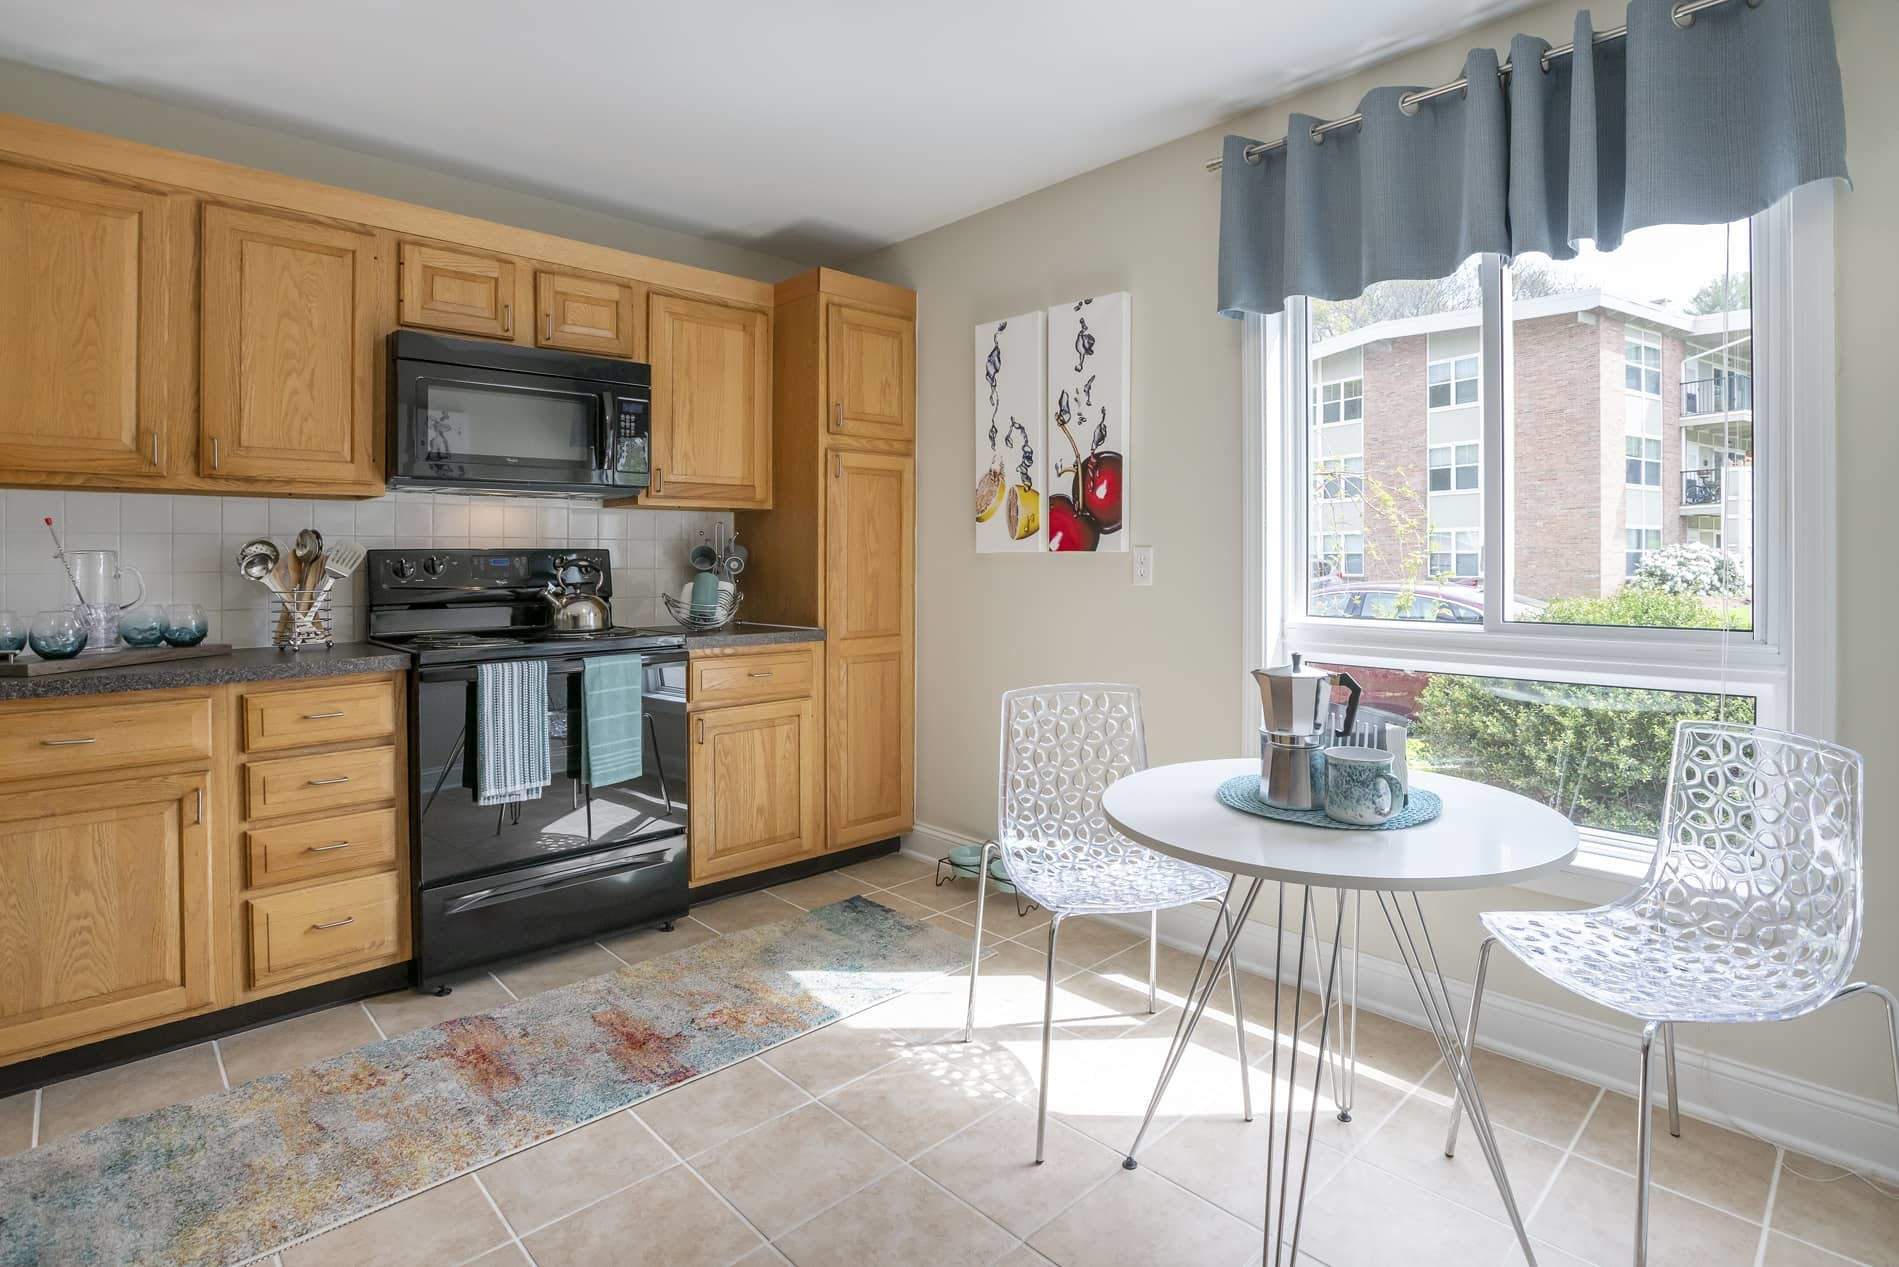 2 Beds, 1 Bath apartment in Norwood for $1,992